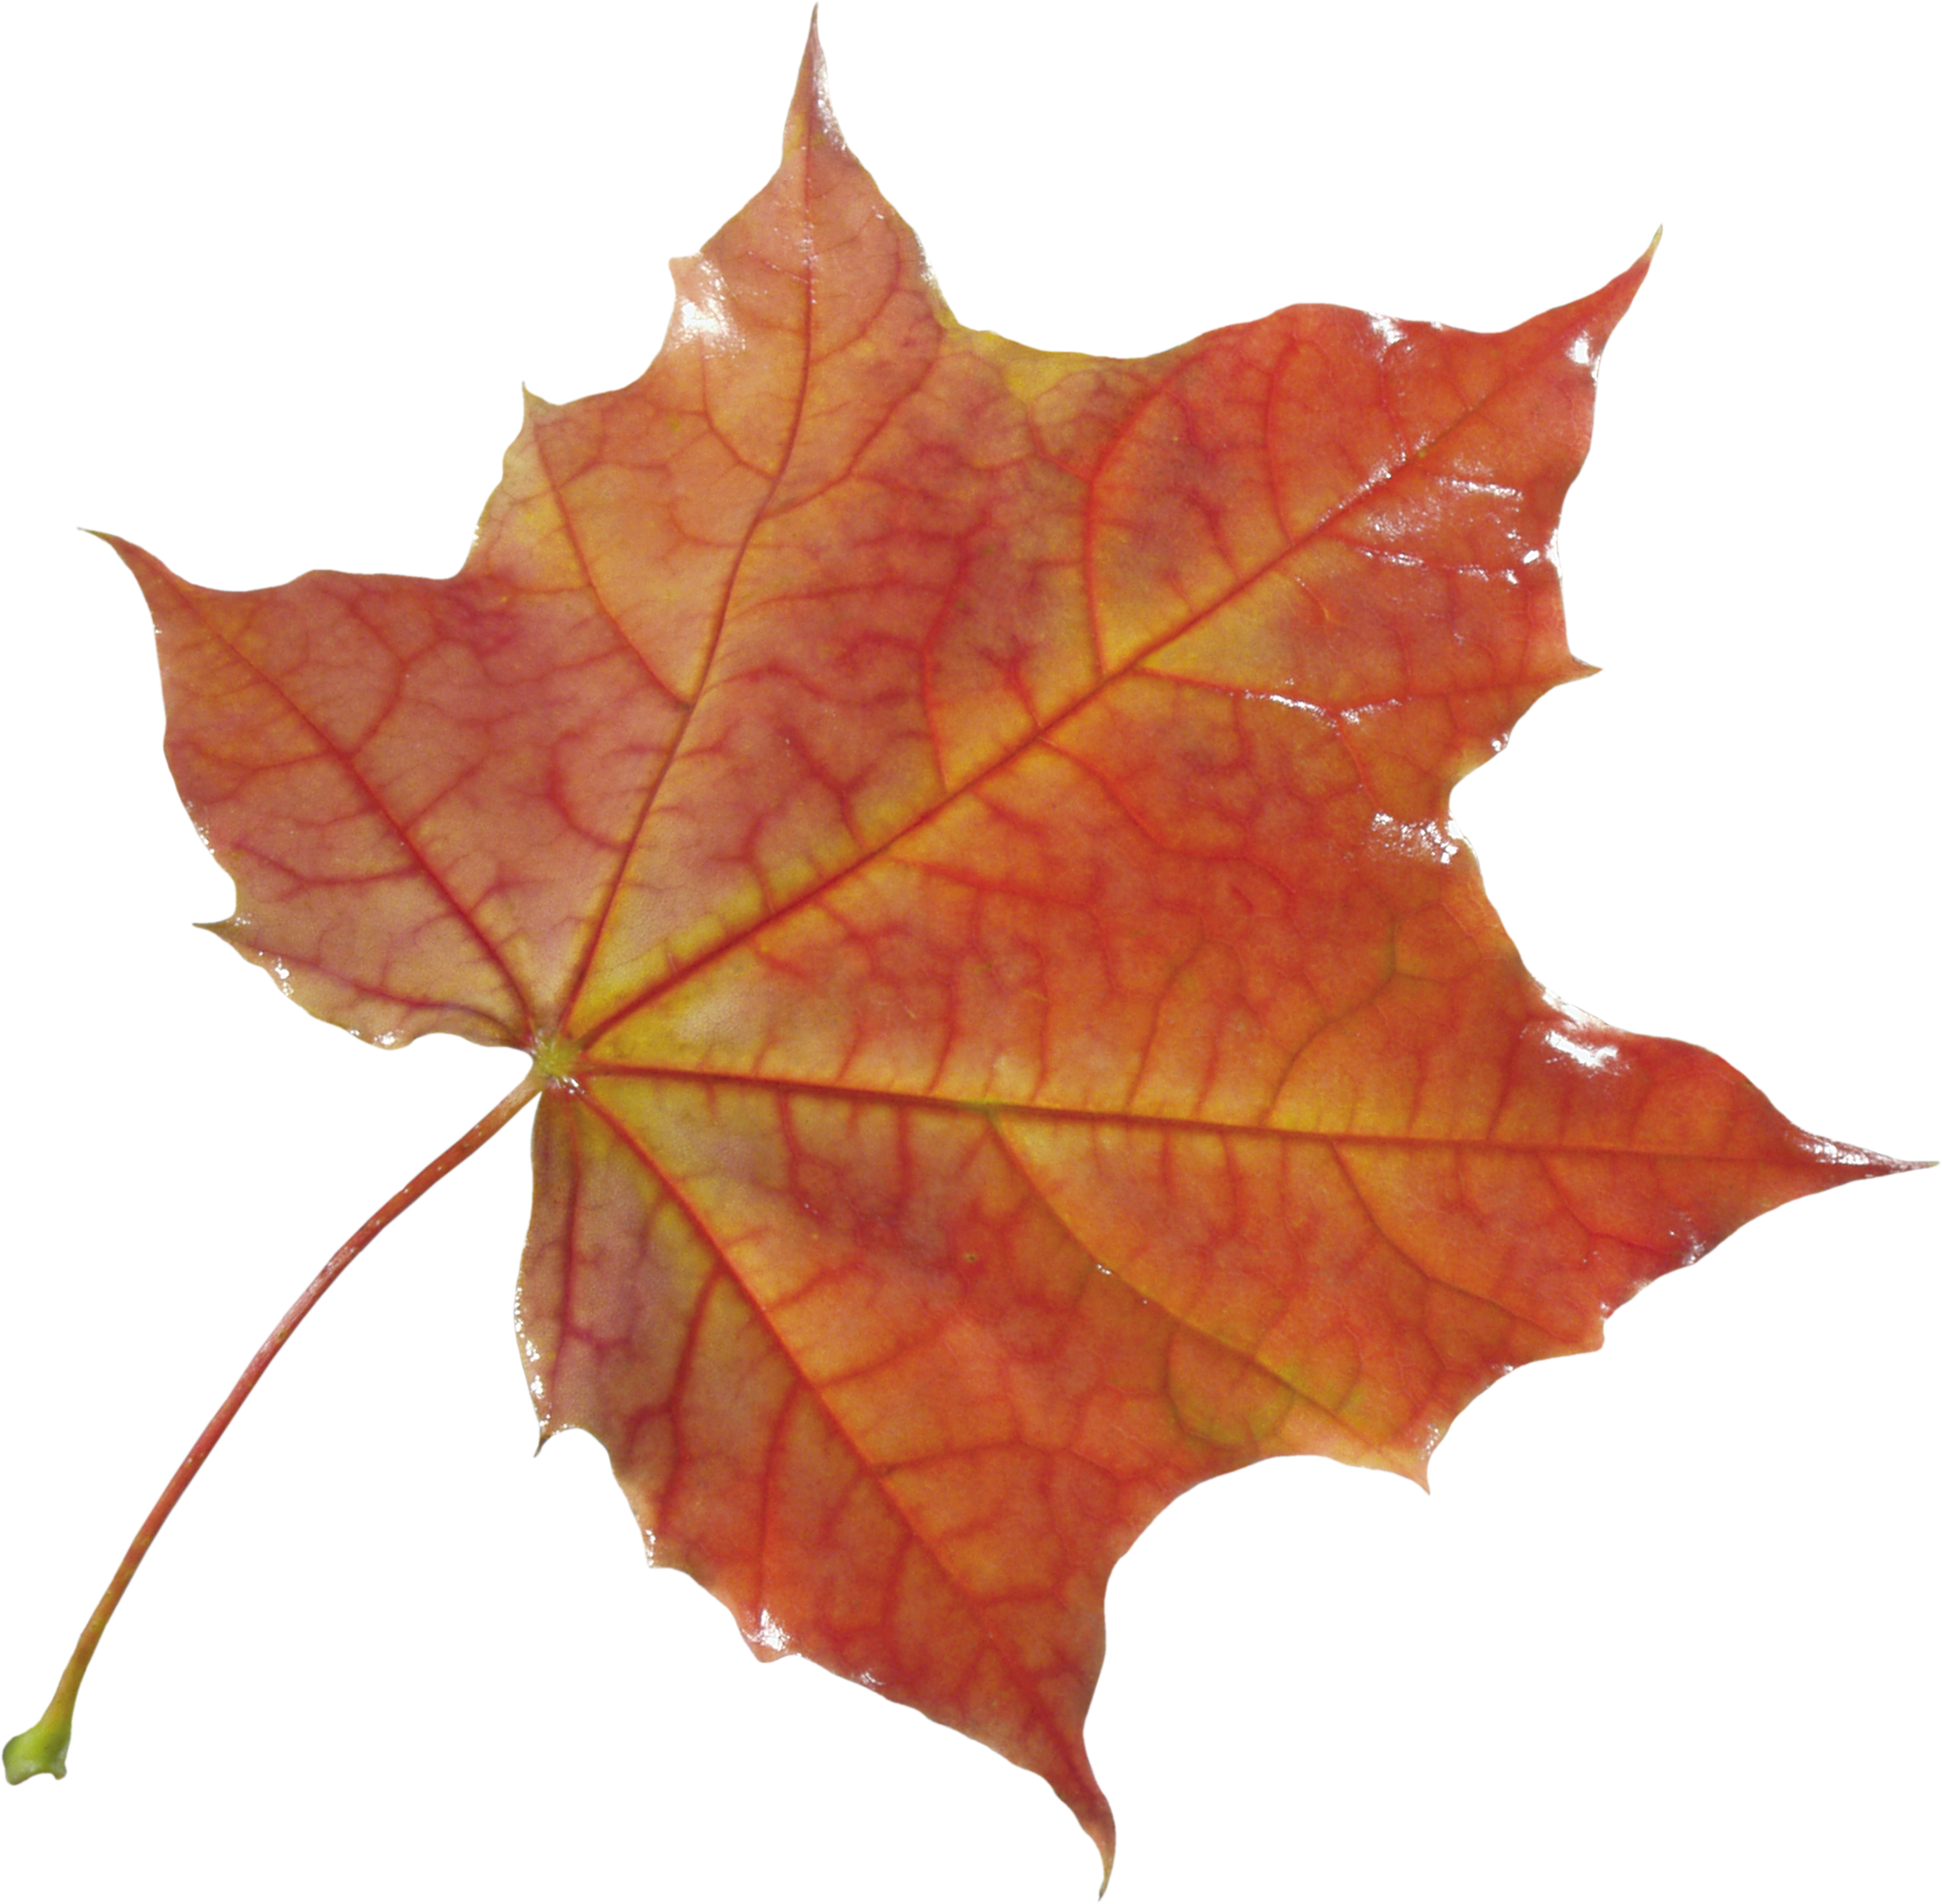 Autumn Leaves HD PNG - 96881